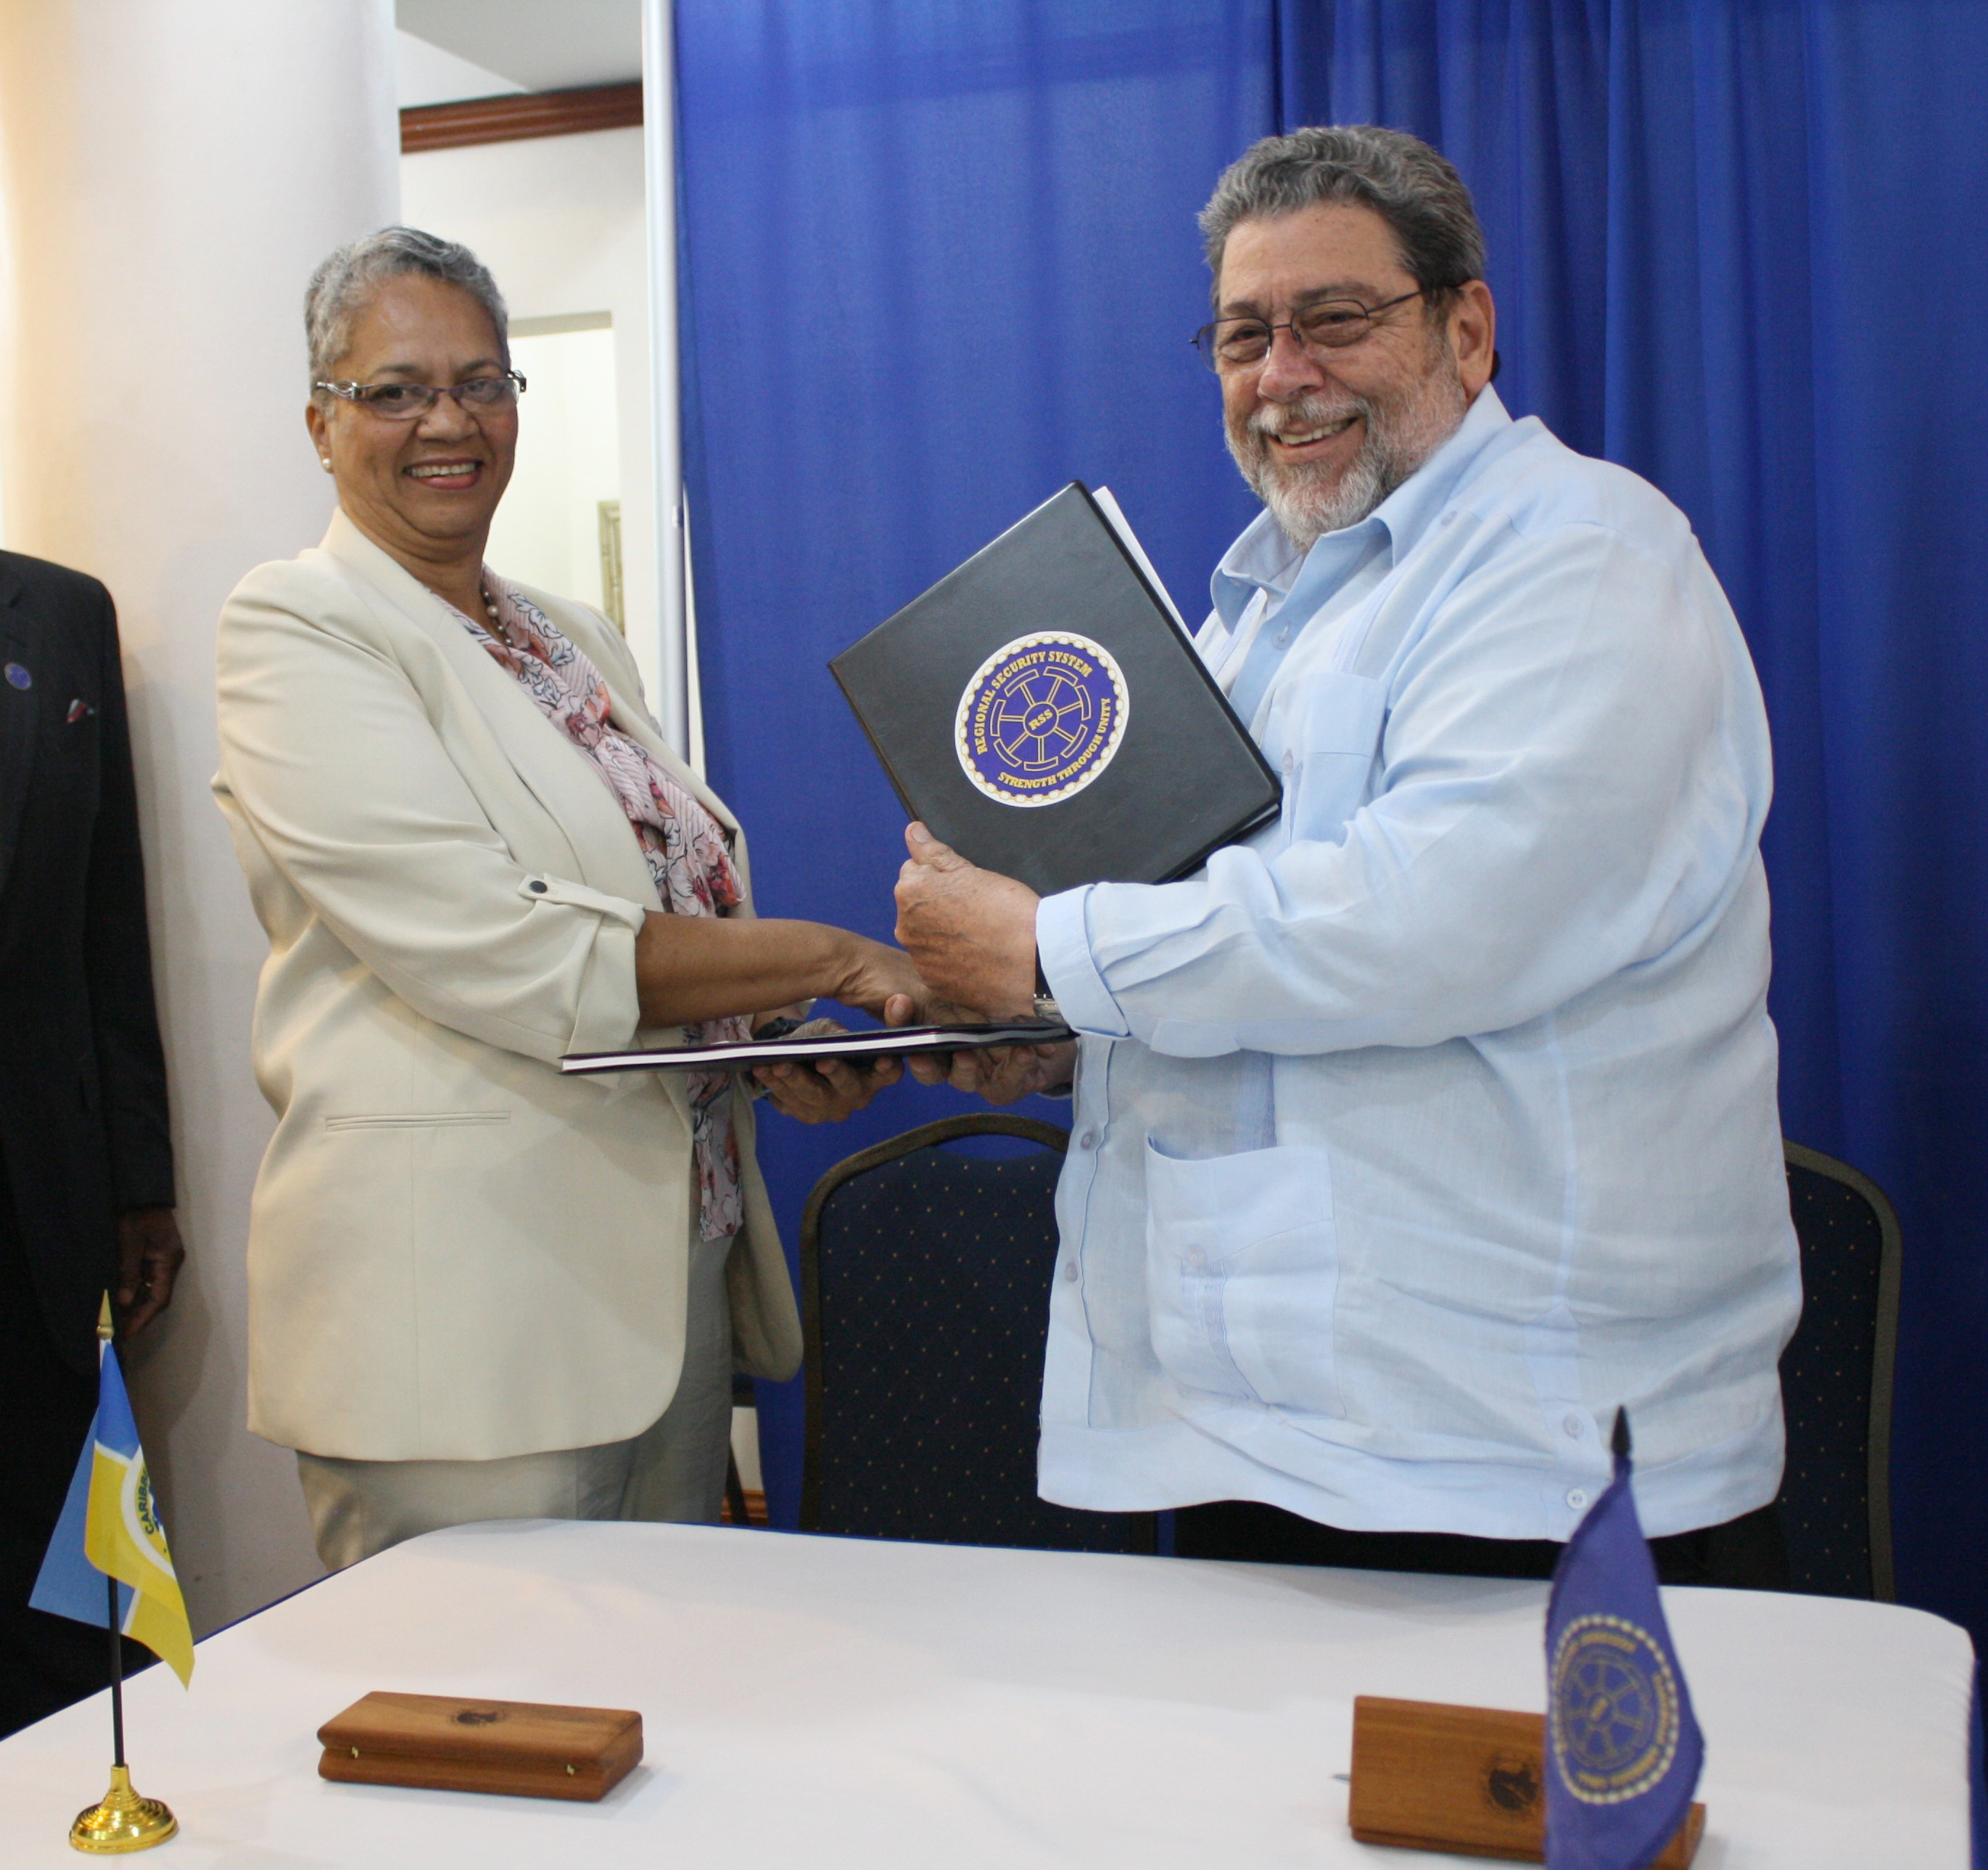 CDB Vice-President Monica La Bennett and RSS Chairman, St. Vincent and the Grenadines Prime Minister Dr. Ralph Gonsalves smiling facing camera.